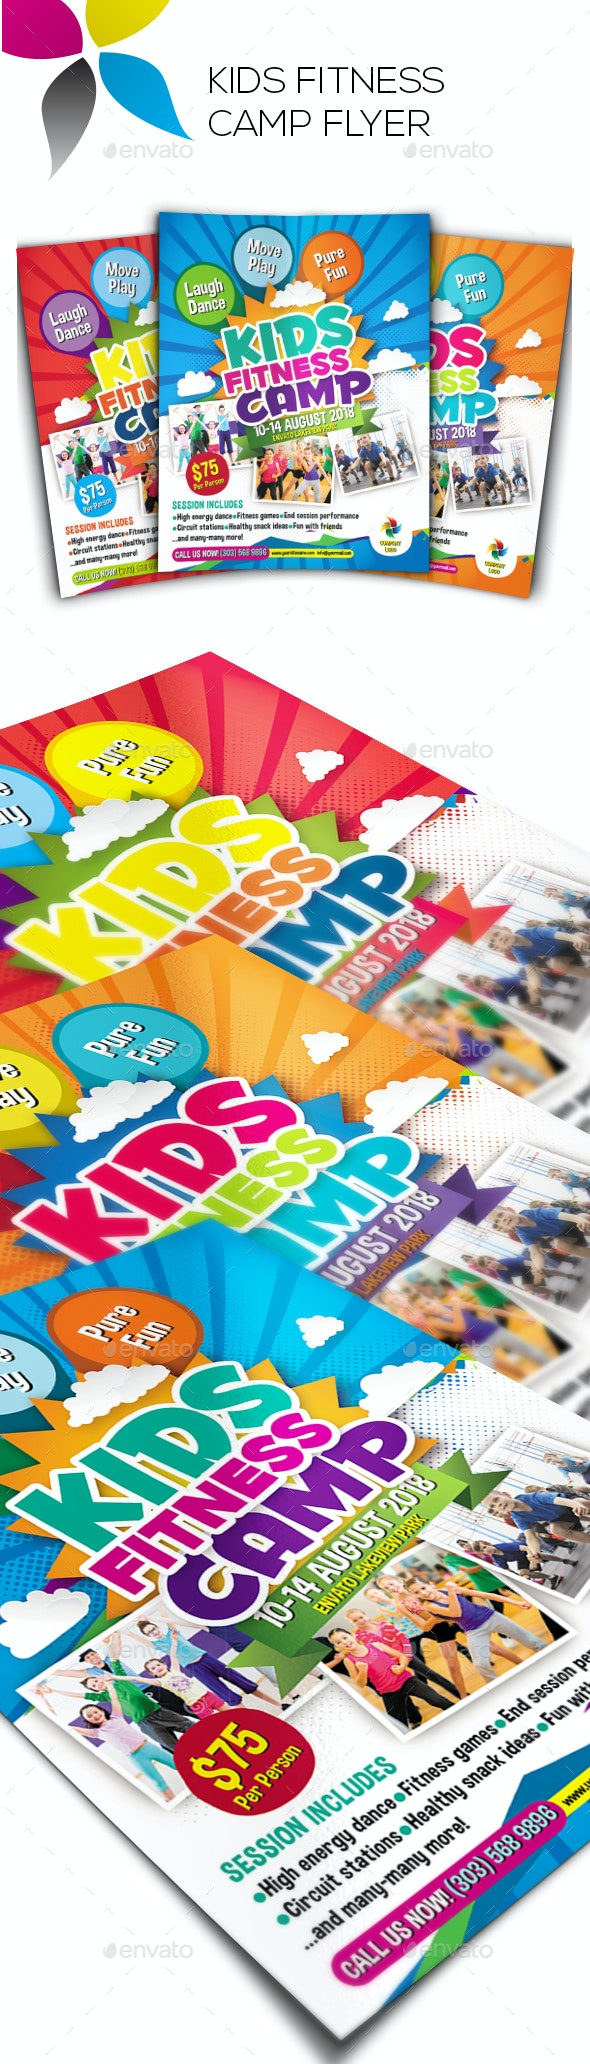 Kids Fitness Camp Flyer - Corporate Flyers